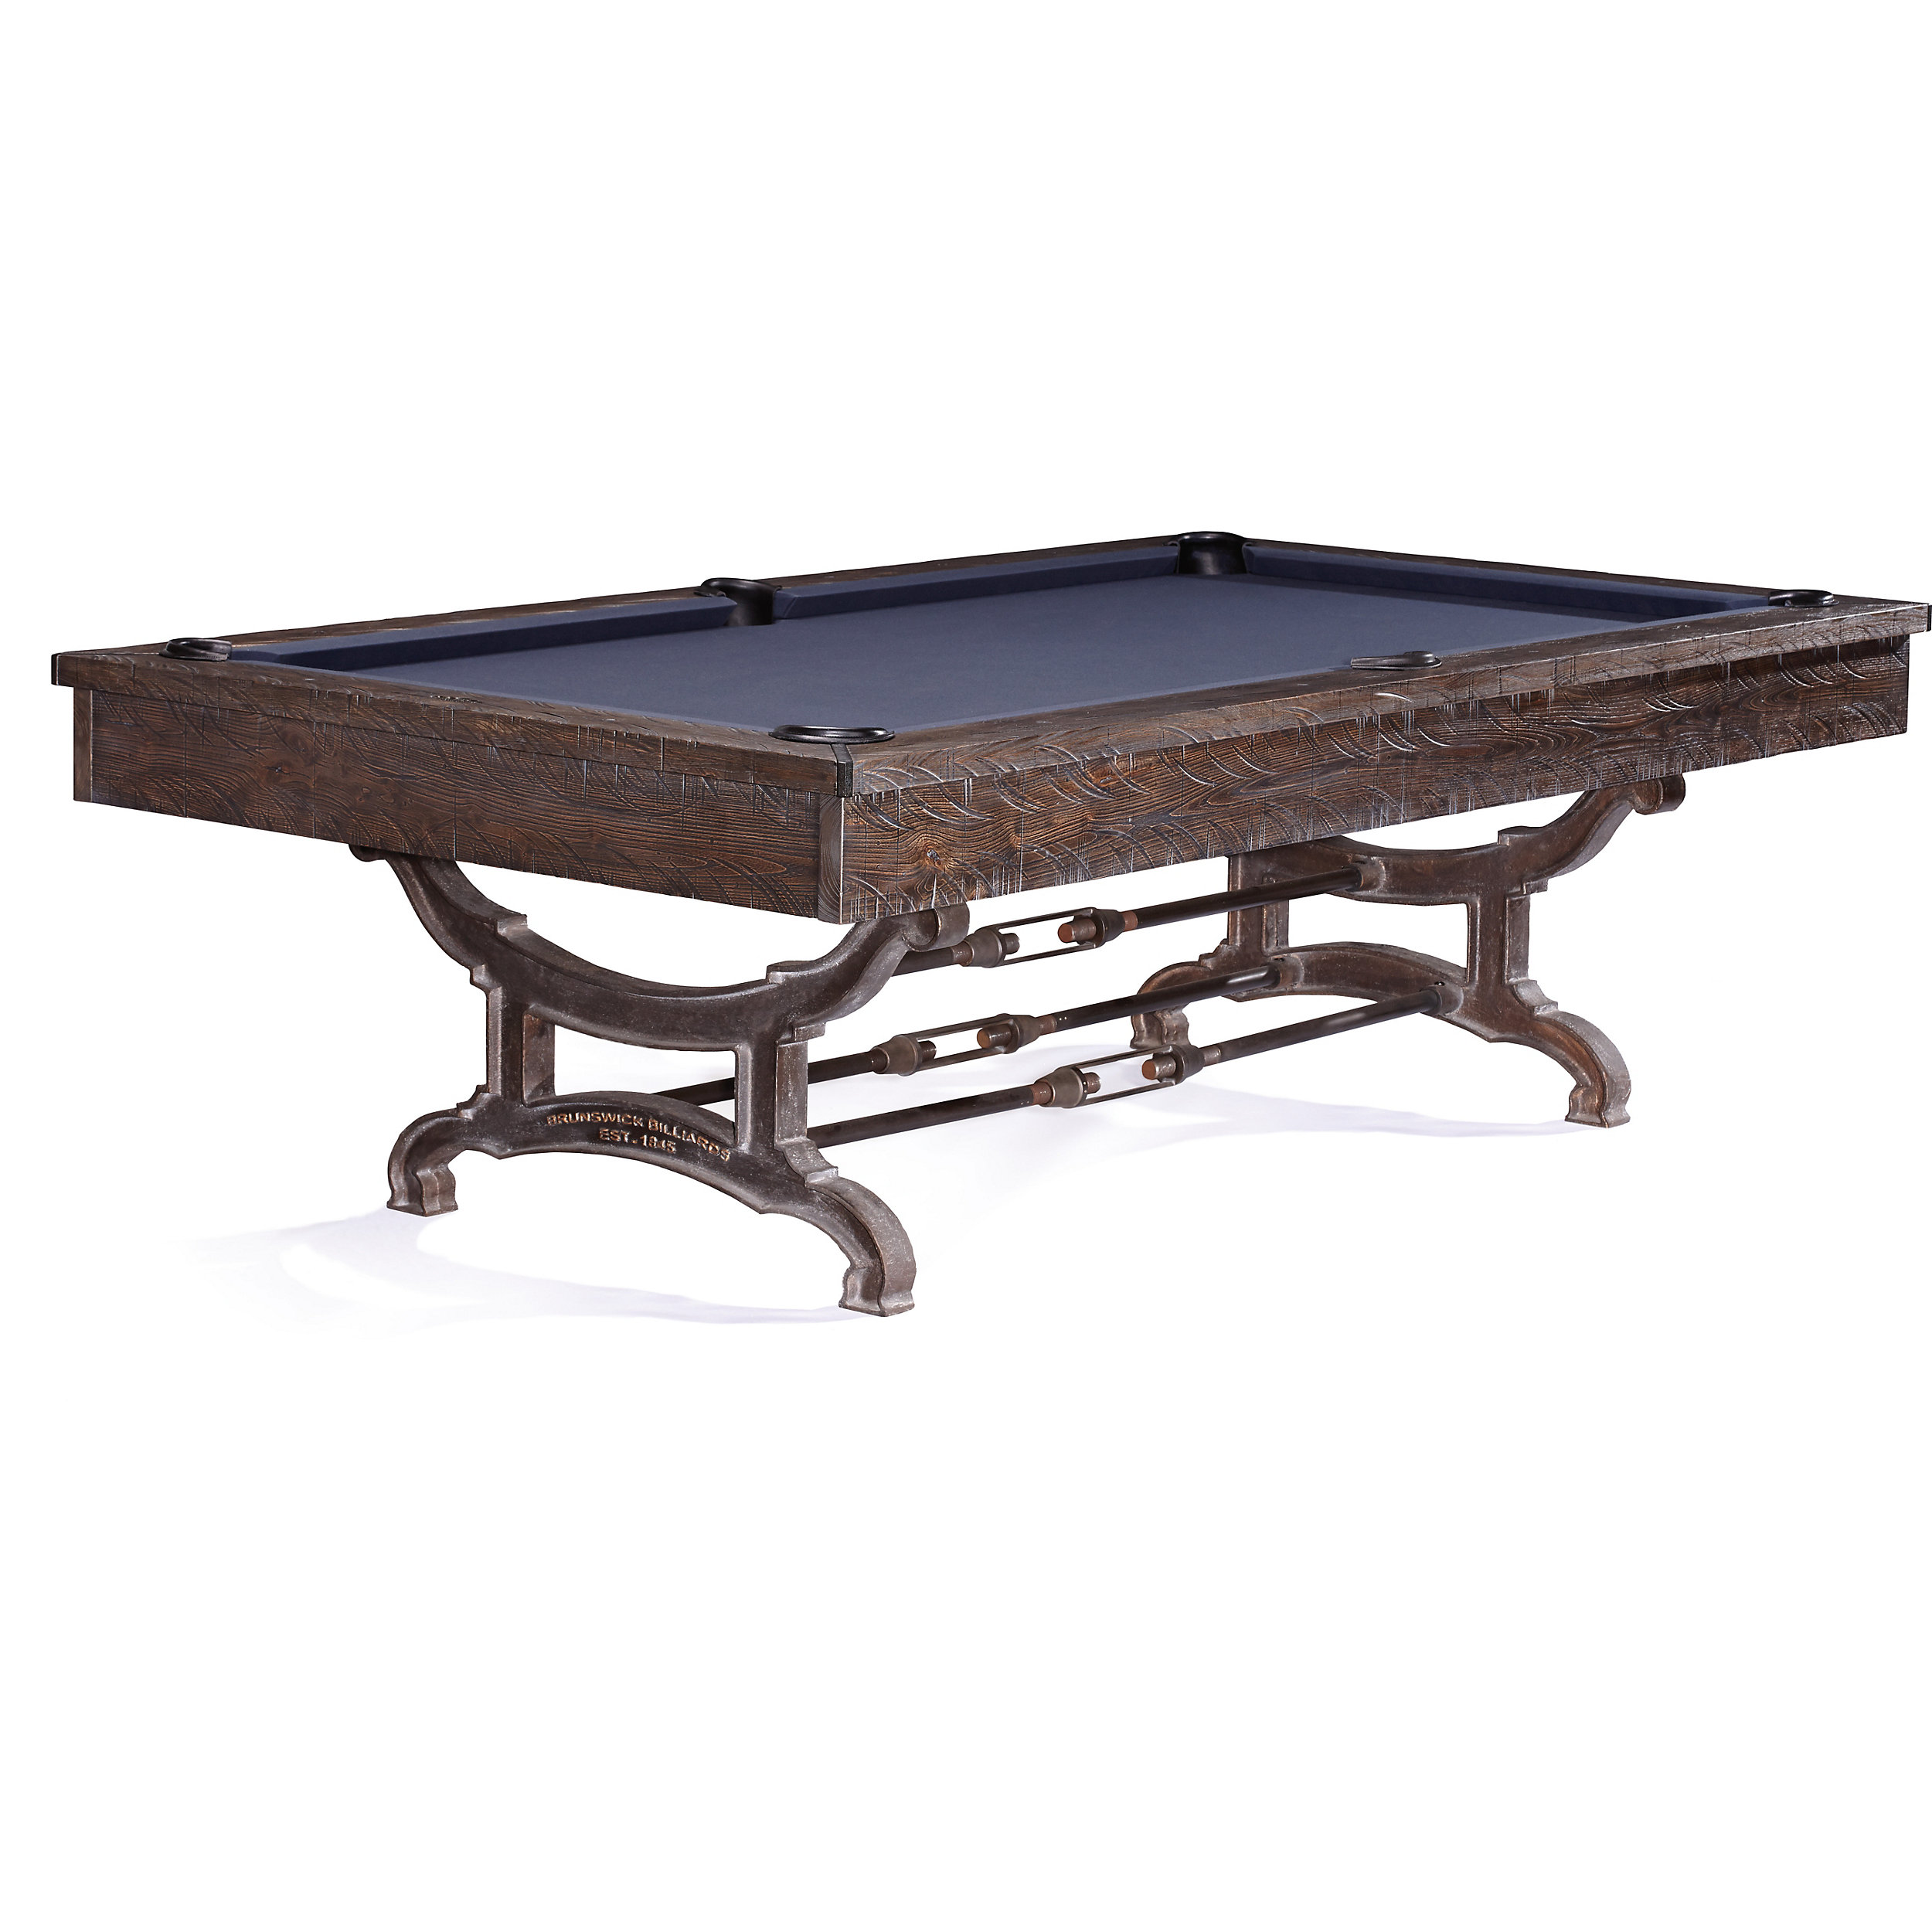 used billiard cowboys together sale pool bewildering accessories on bar for tables category the ideas with dallas and table eye easy